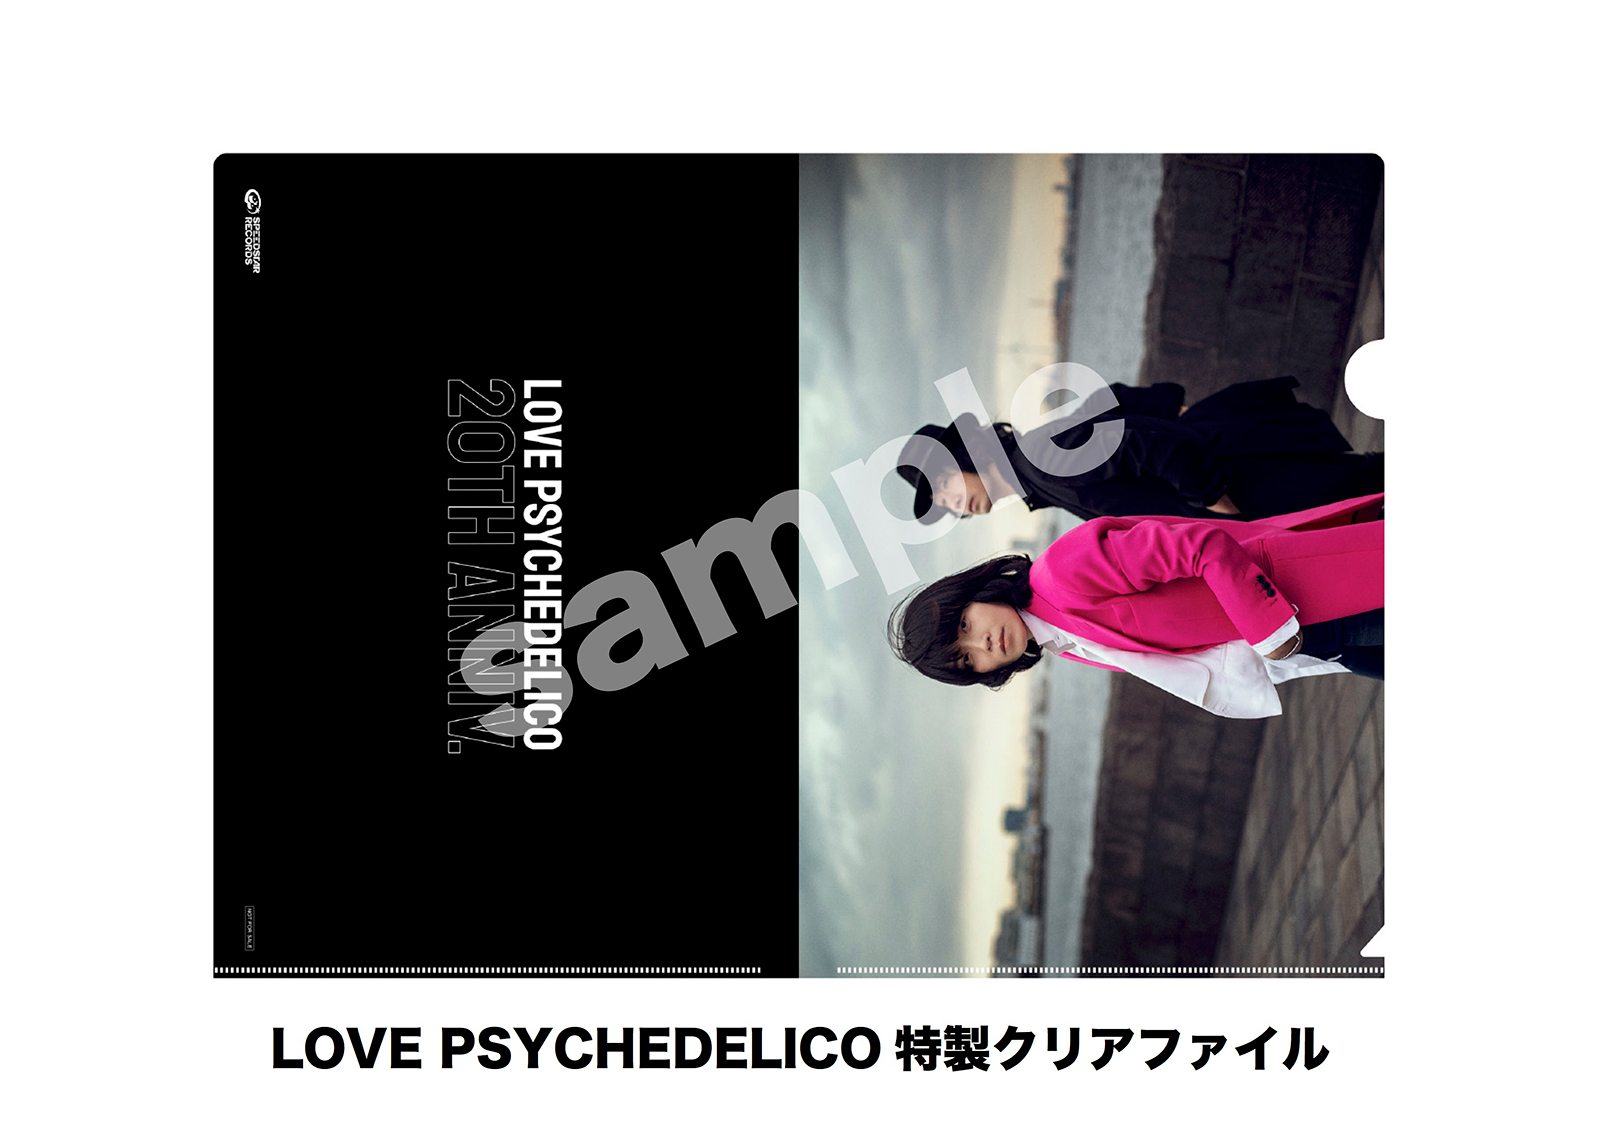 「LOVE PSYCHEDELICO特製クリアファイル」